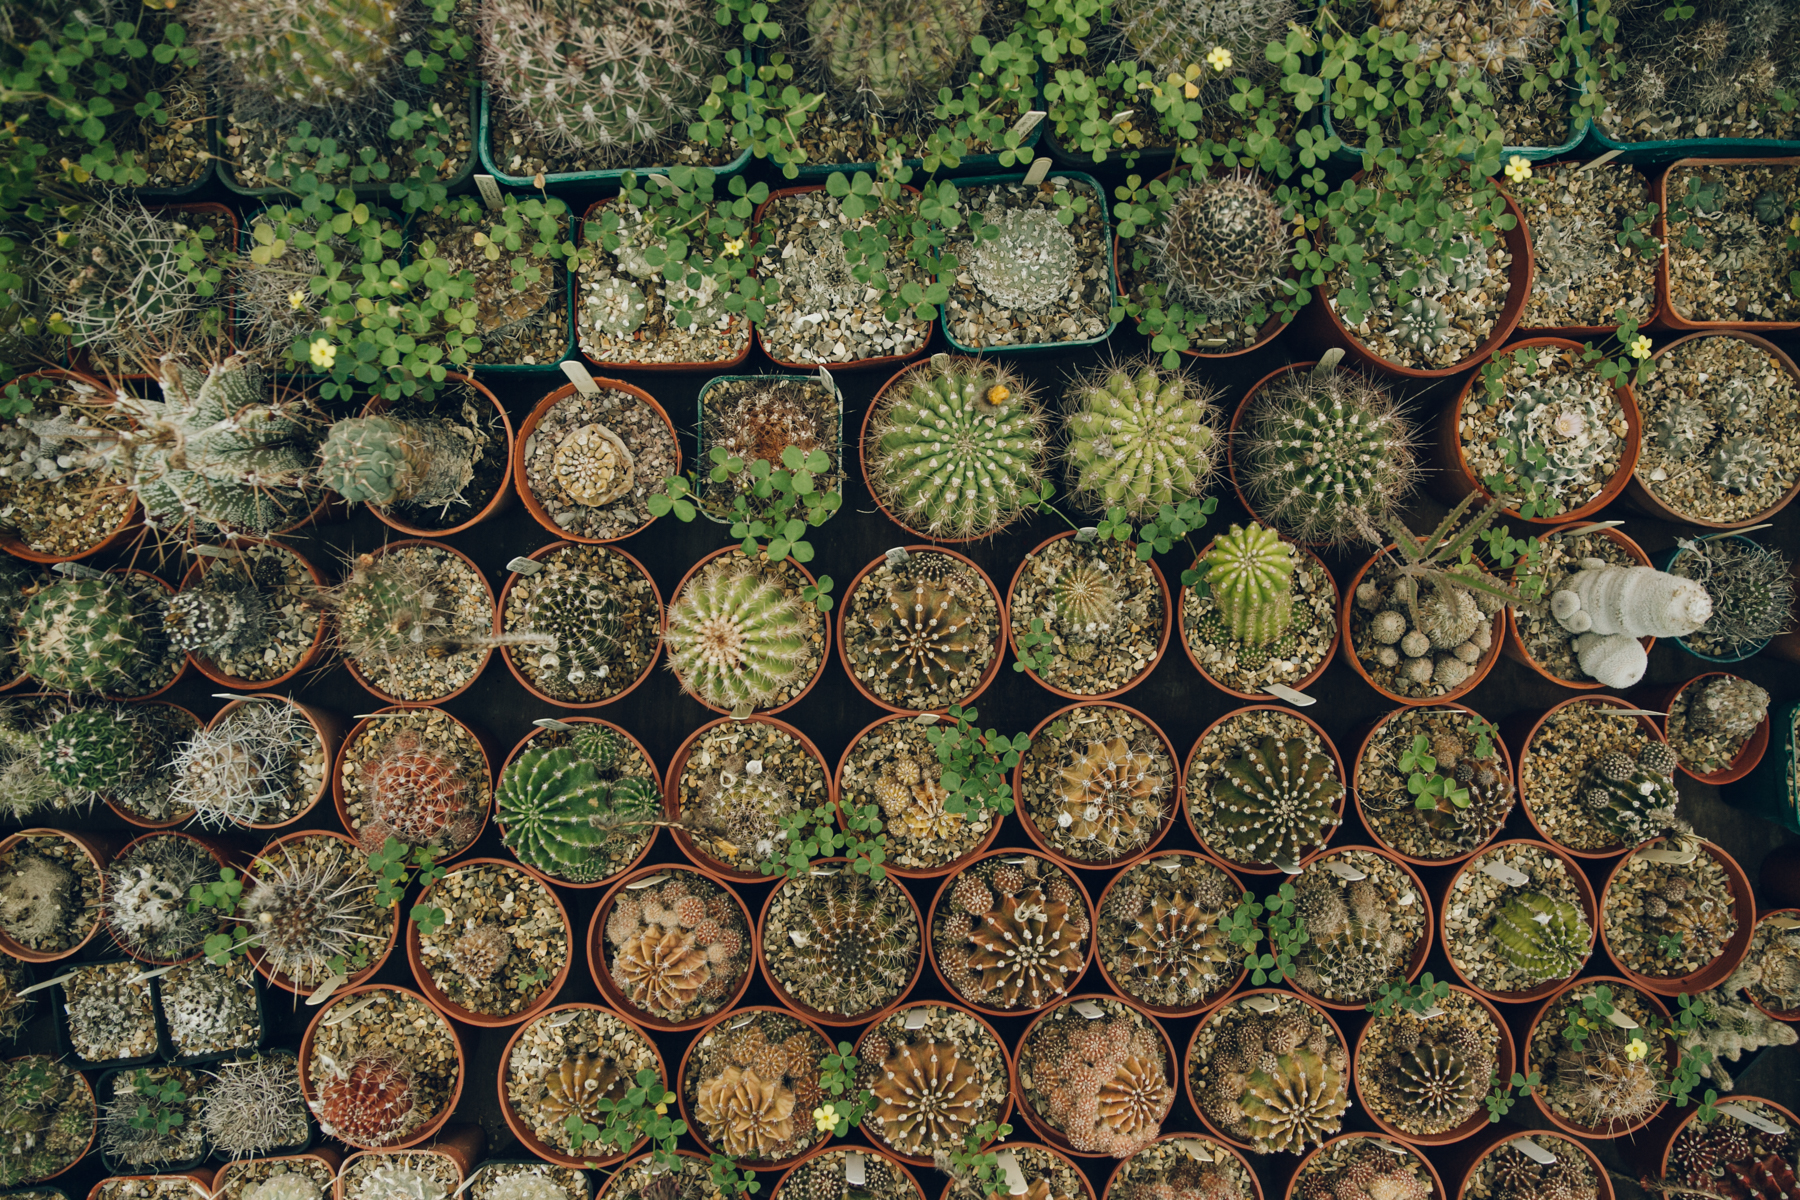 Rows of different cacti.